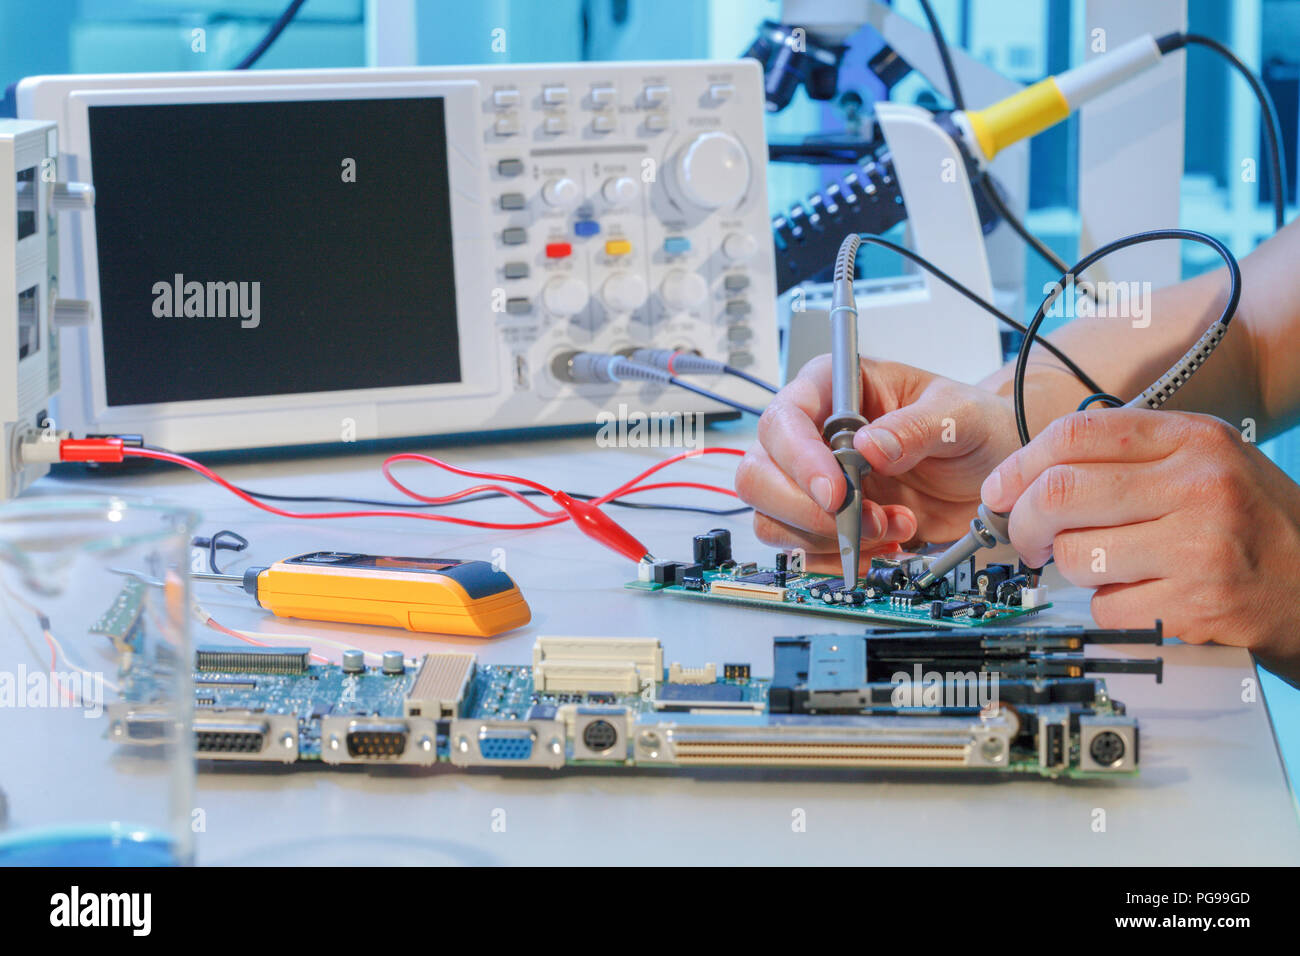 Repairing printed circuit board Stock Photo: 216563997 - Alamy